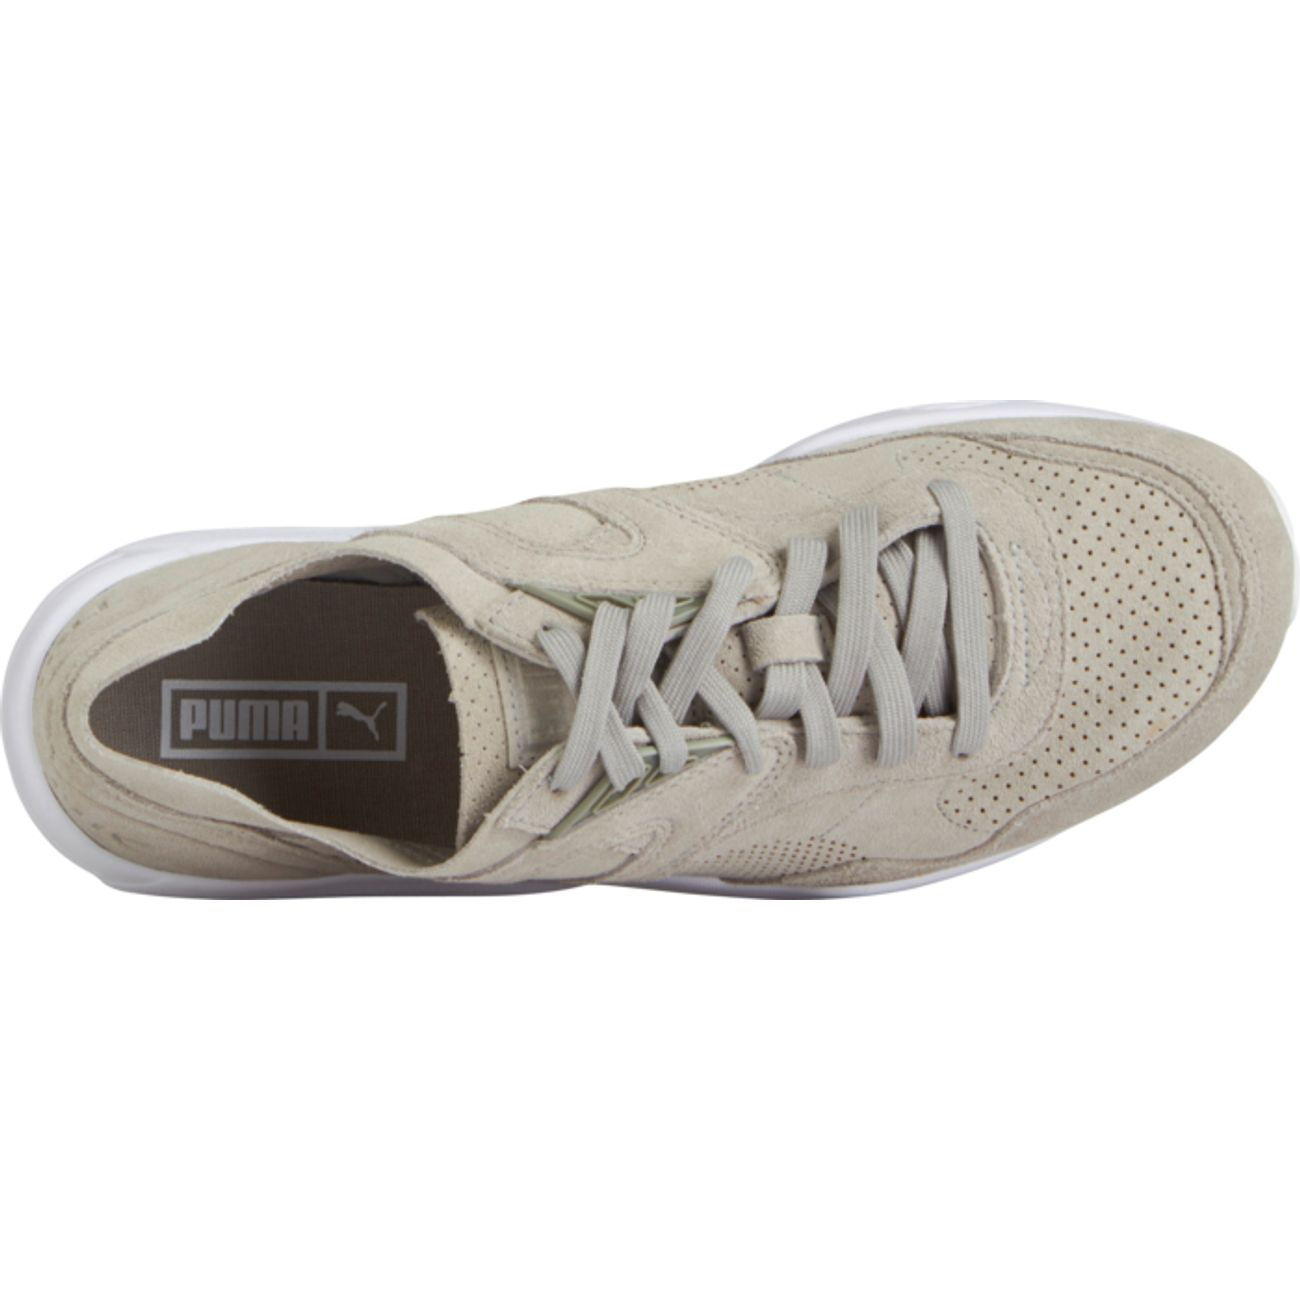 R698 Homme Beige Puma Basses Chaussures Chaussure Soft bf6Y7gy